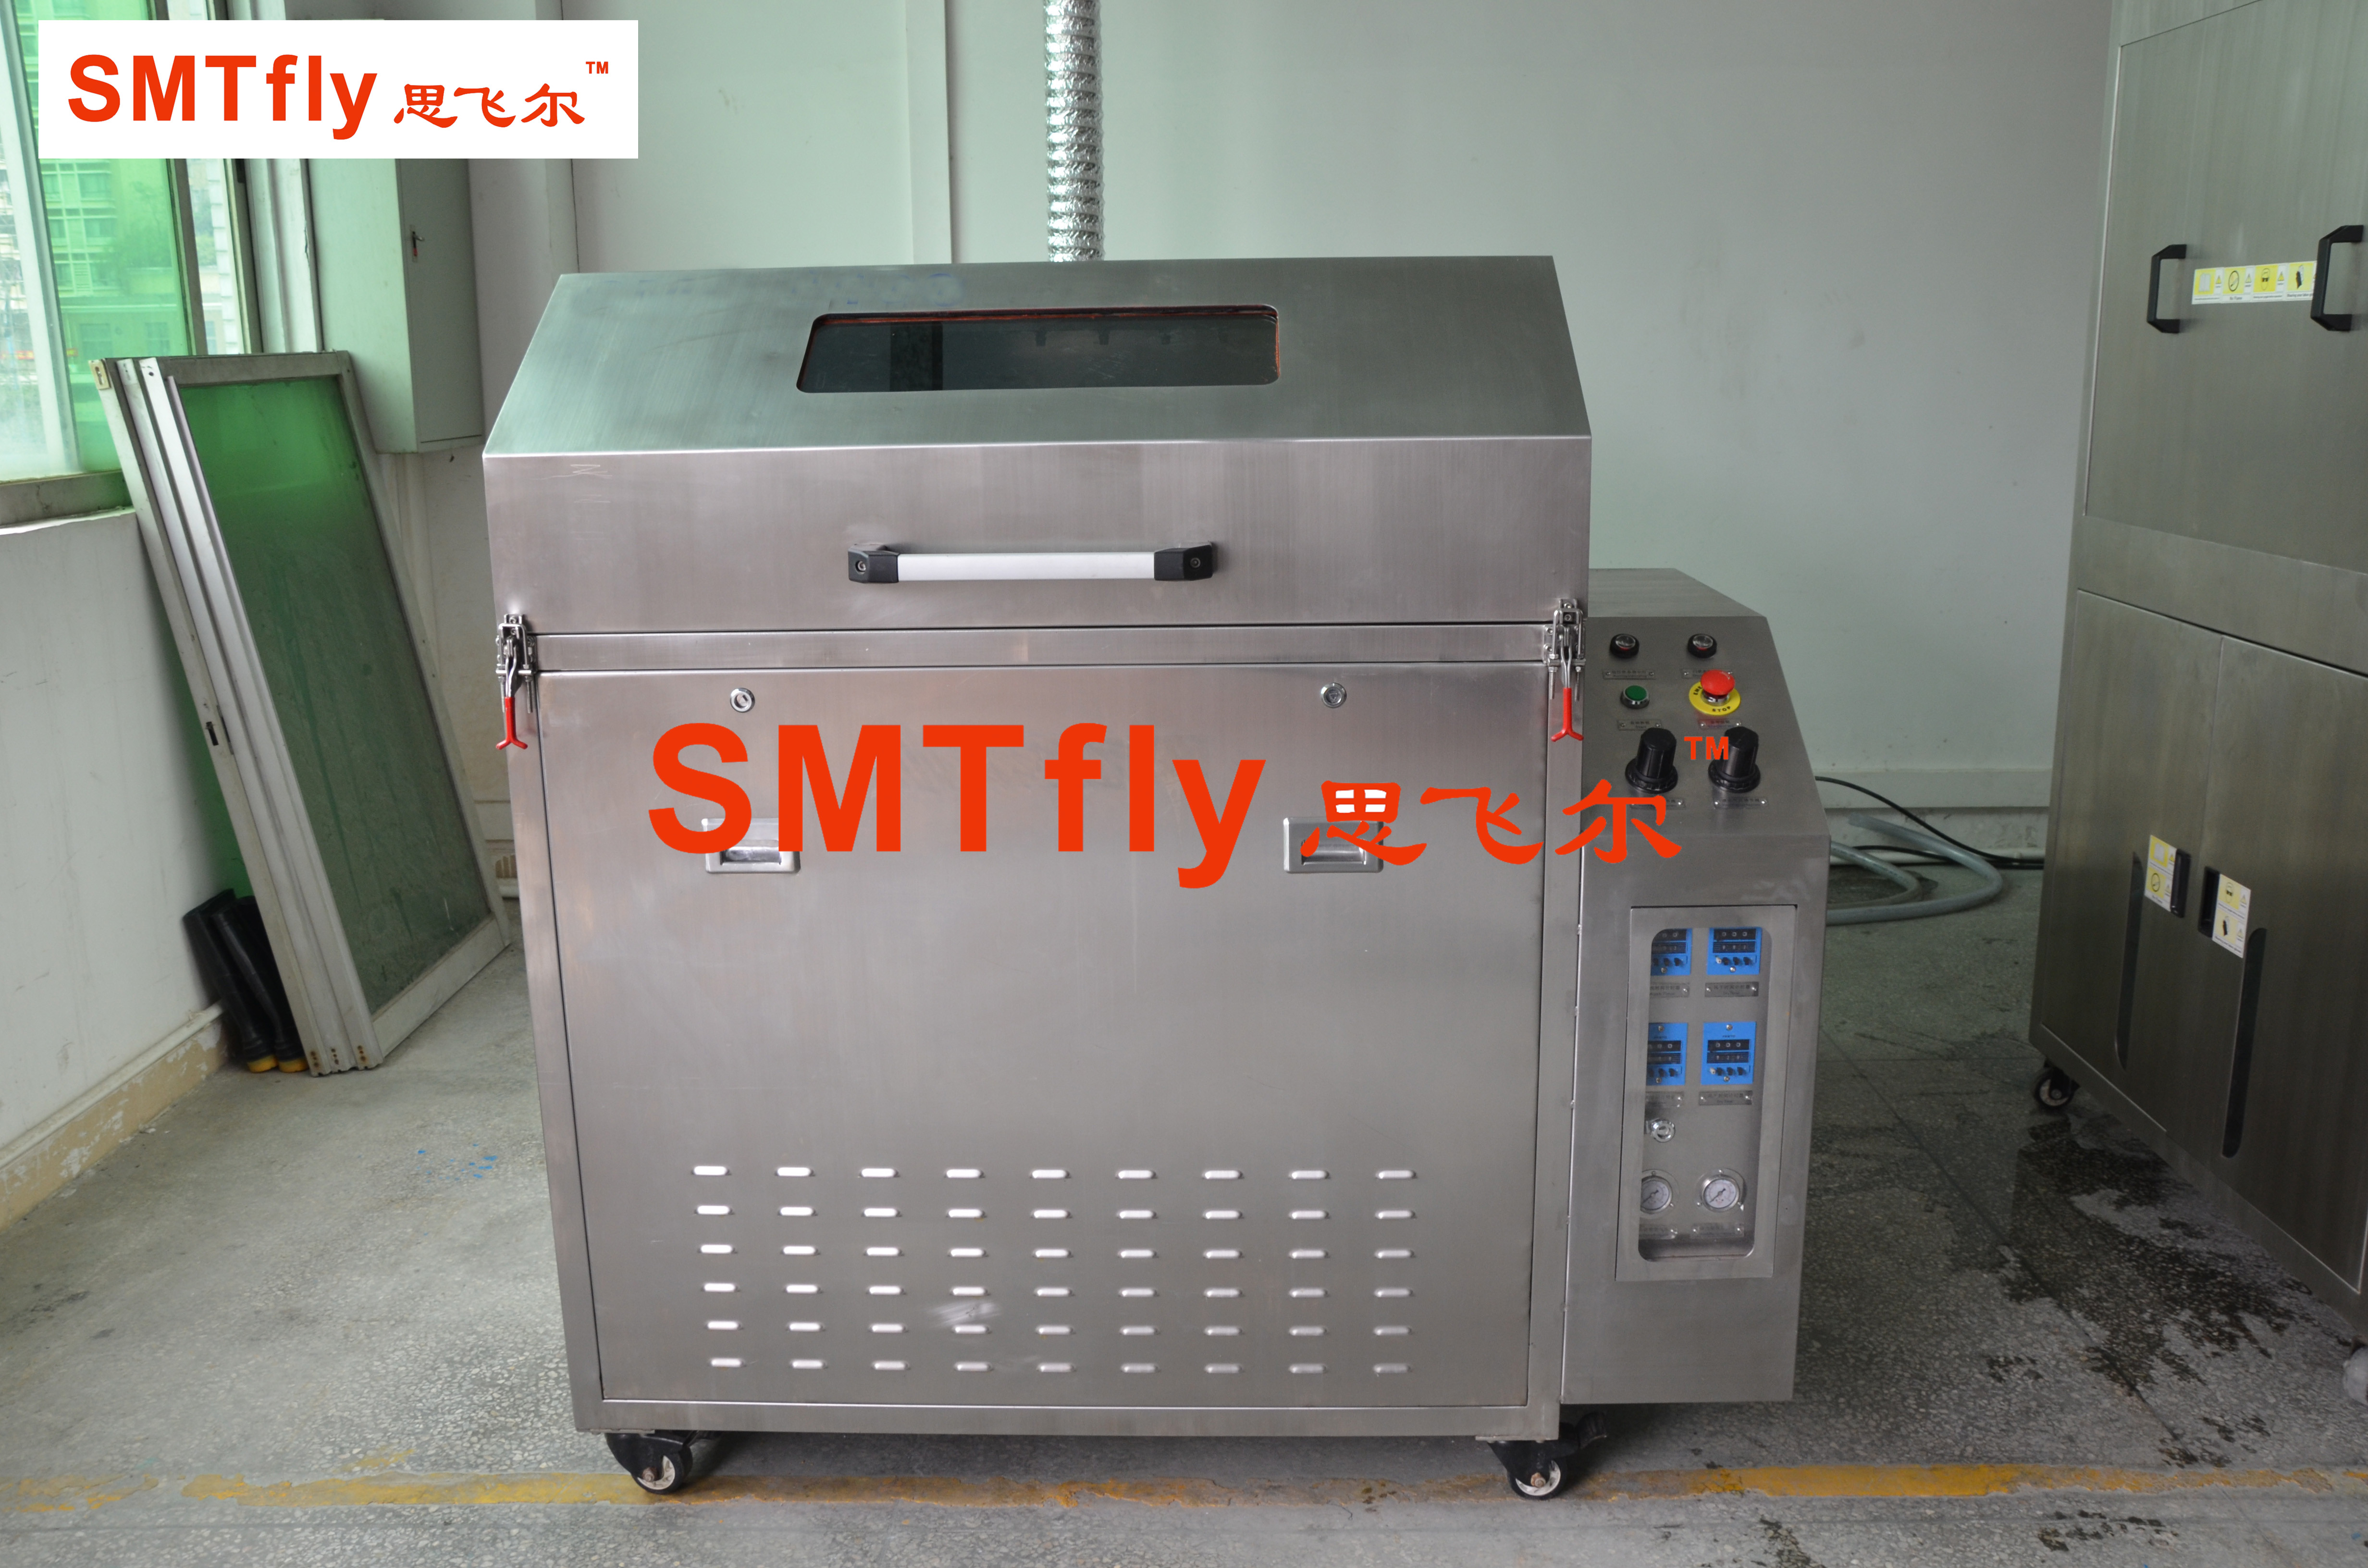 Pallet Cleaning Machine, SMTfly-5100